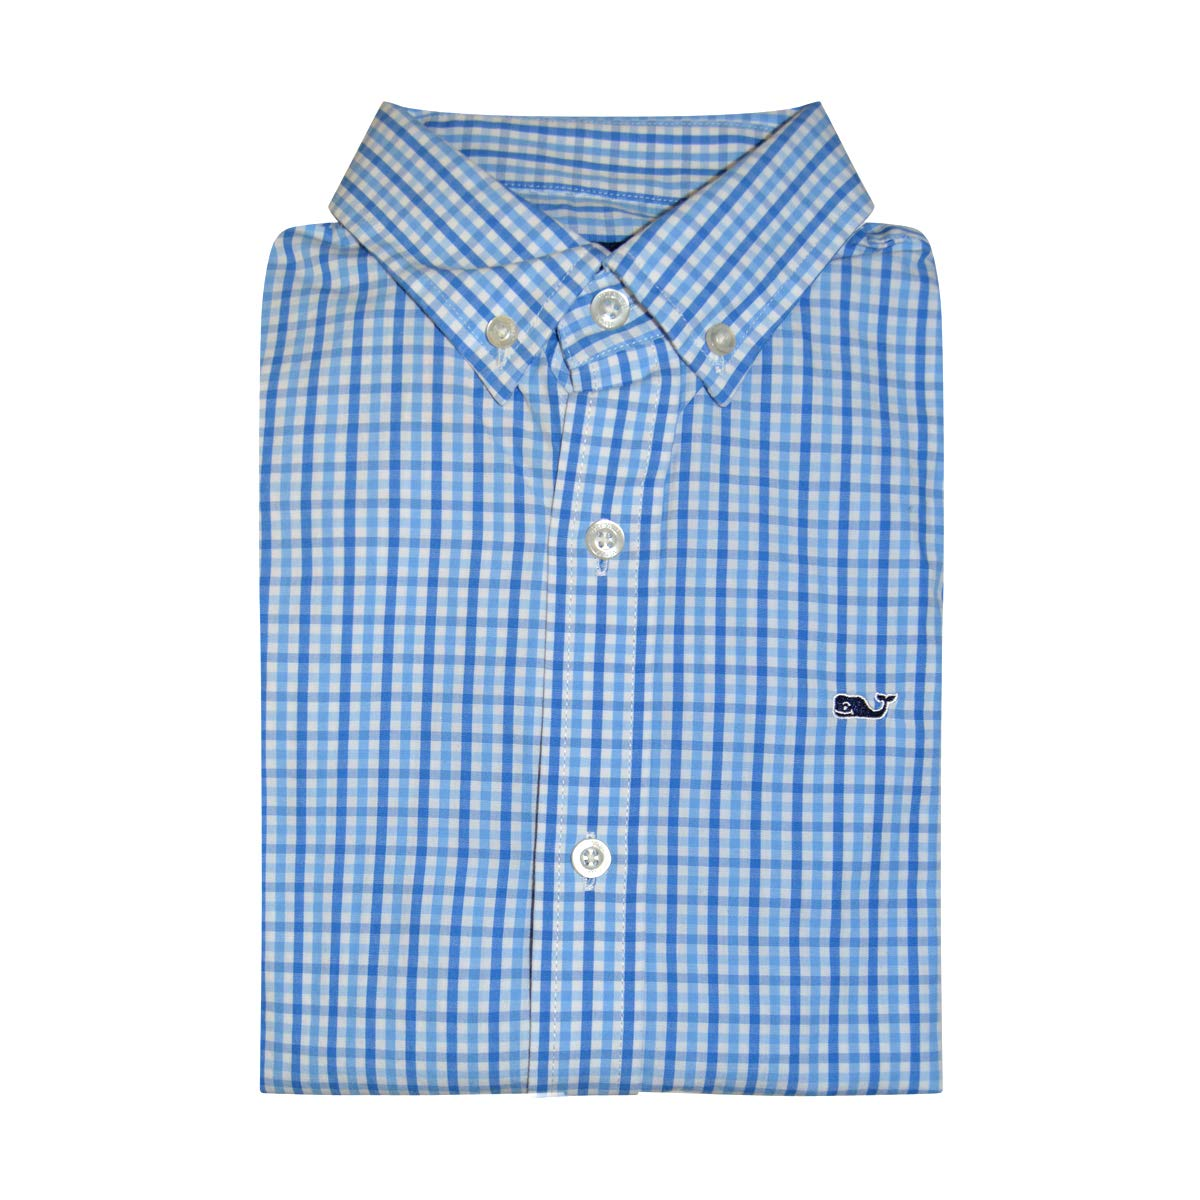 Vineyard Vines Boys Whale Shirt Long Sleeve Button Down Dress Shirt (Turtle Check Harbor Cay, X-Large)